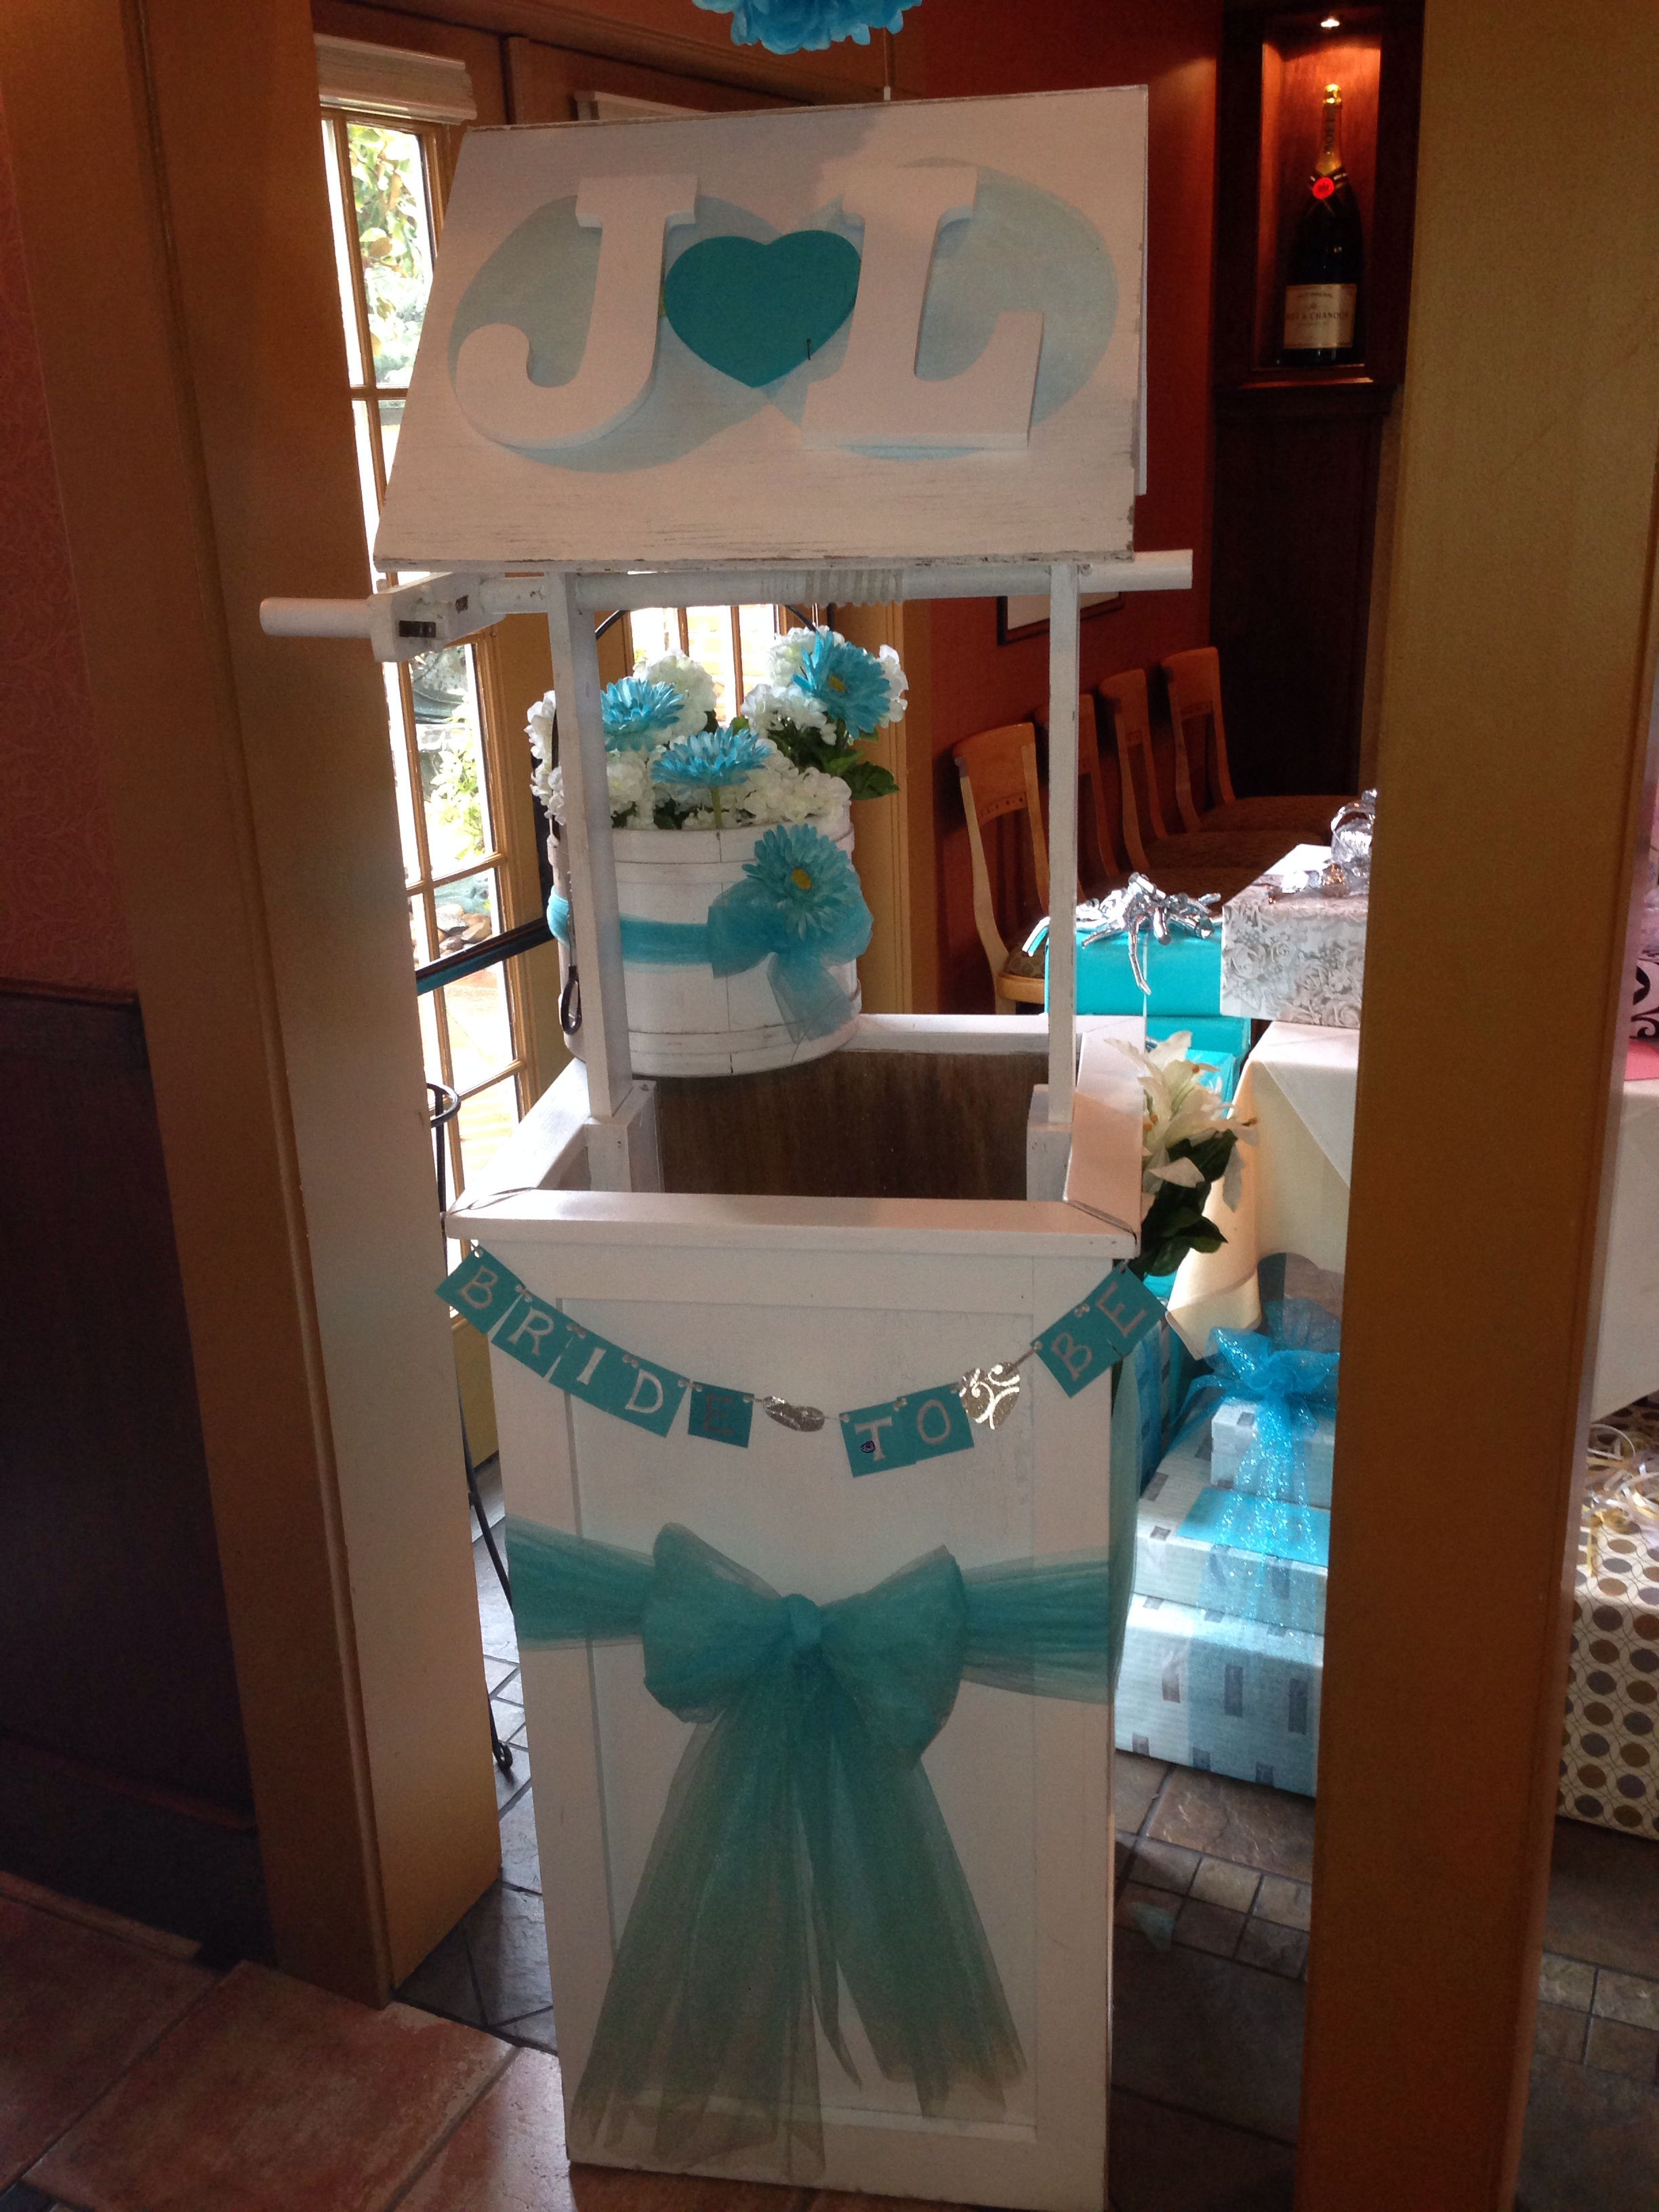 Teal bridal shower wishing well | My own creations ...